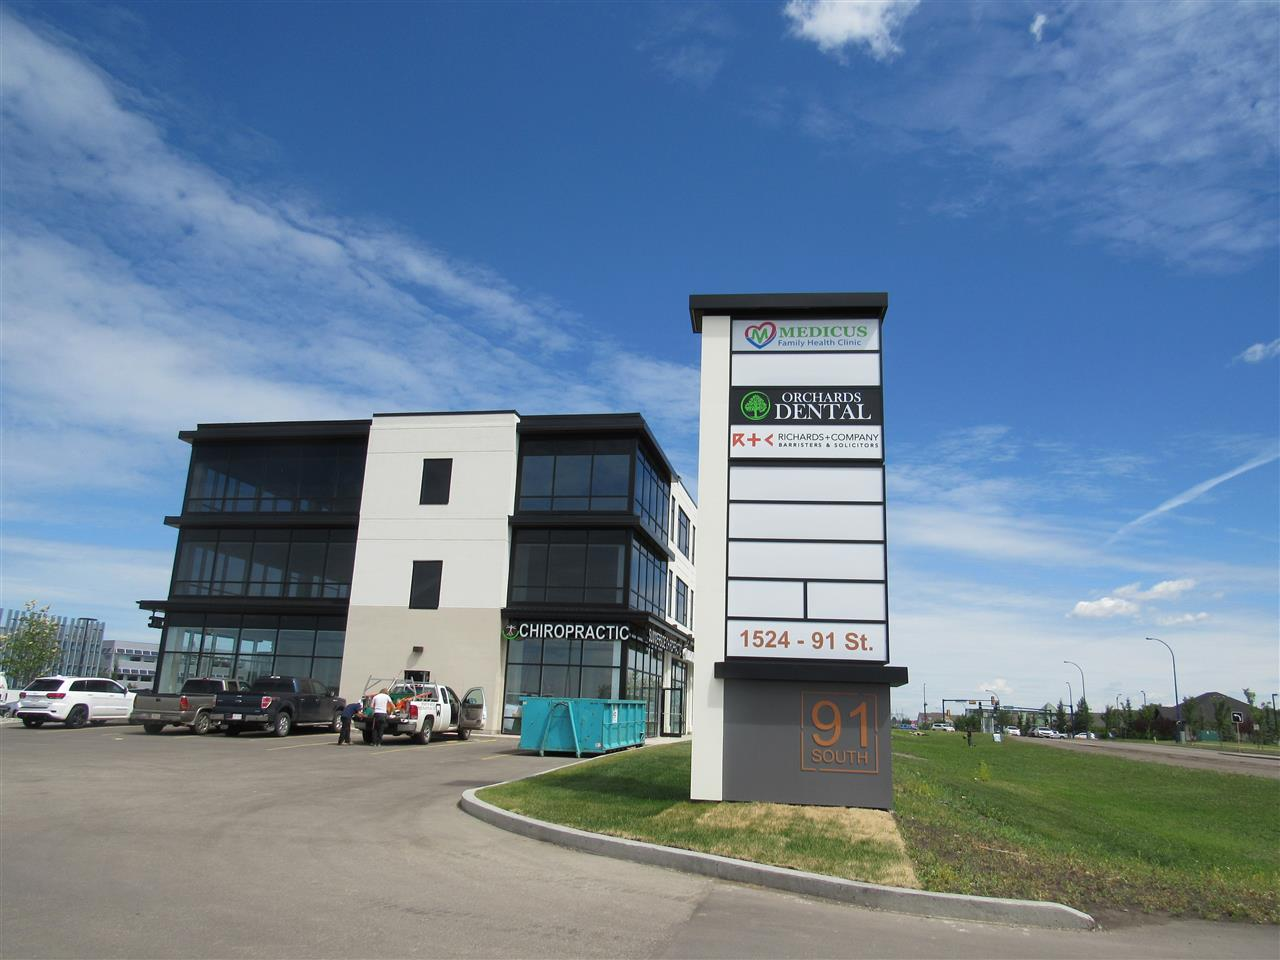 Newly built 827 sq ft office space located along 91 st at the vibrant South Henday business district. This unit located on the 3/ F of a 3 storey office condo complex with various businesses set up including medical & health related clinic, pharmacy, legal, financial & accounting offices. Conveniently located with easy access to QE II Highway, Gateway Blvd, and Anthony Henday Freeway. Unit facing east with lots of sunlight. Ample parking spaces. Excellent opportunity to start your business.